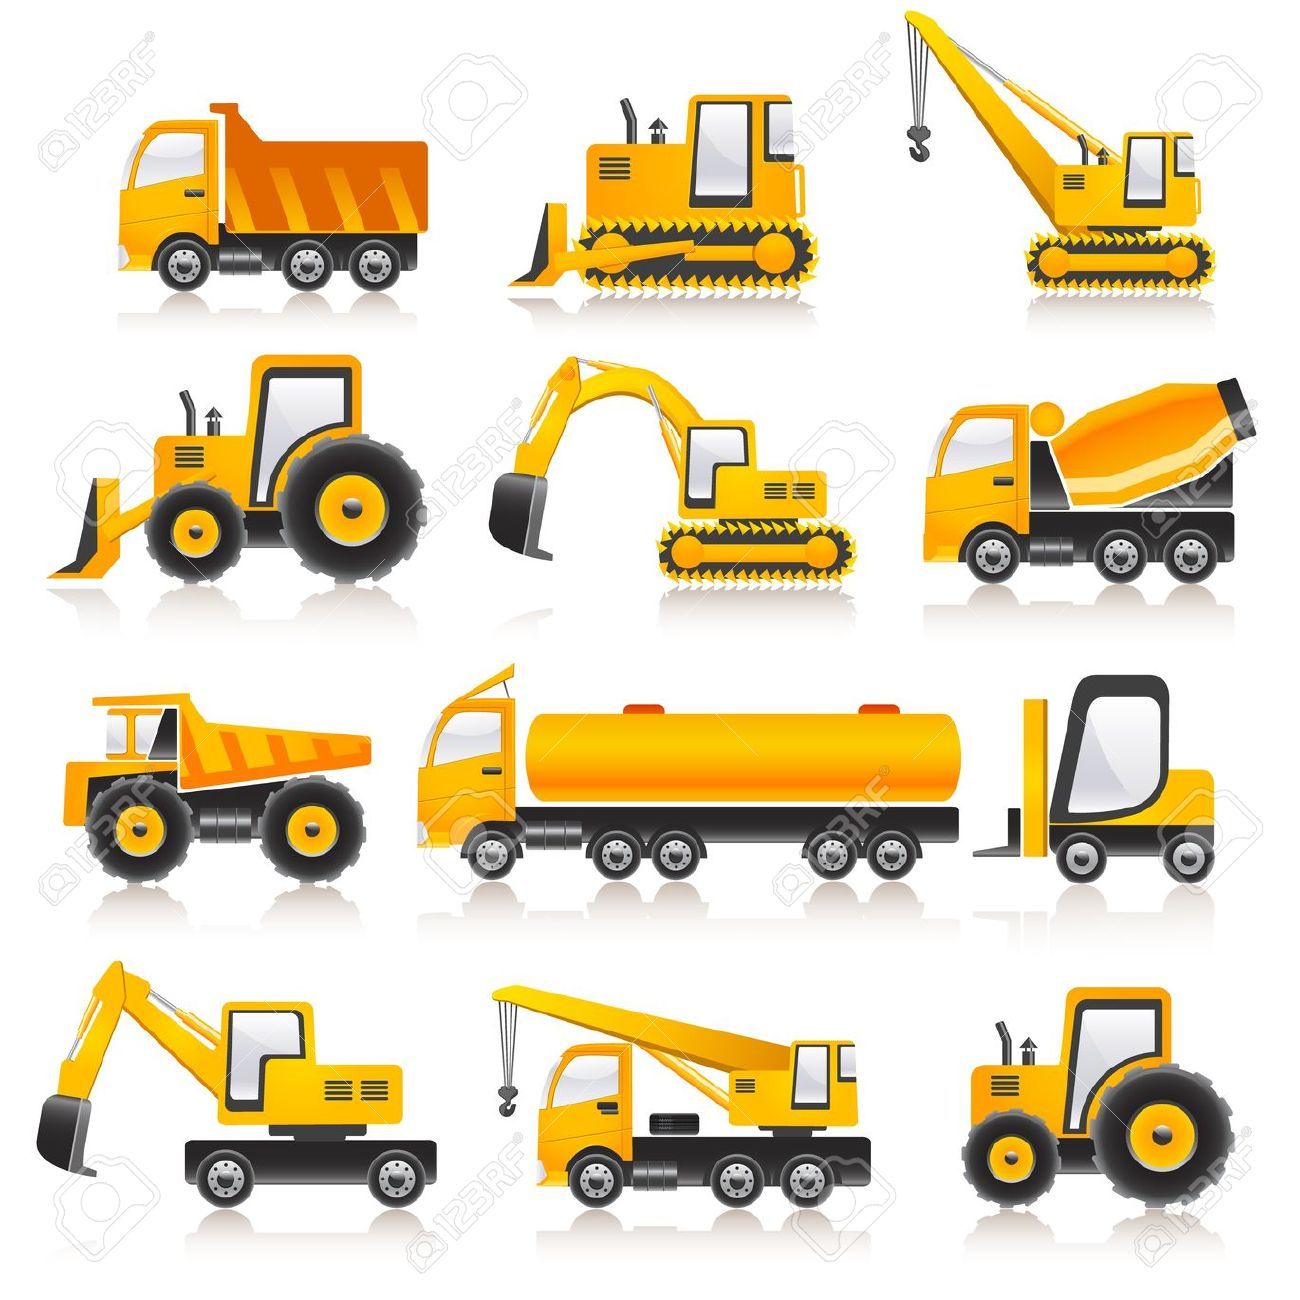 Mining equipment clipart Clipground